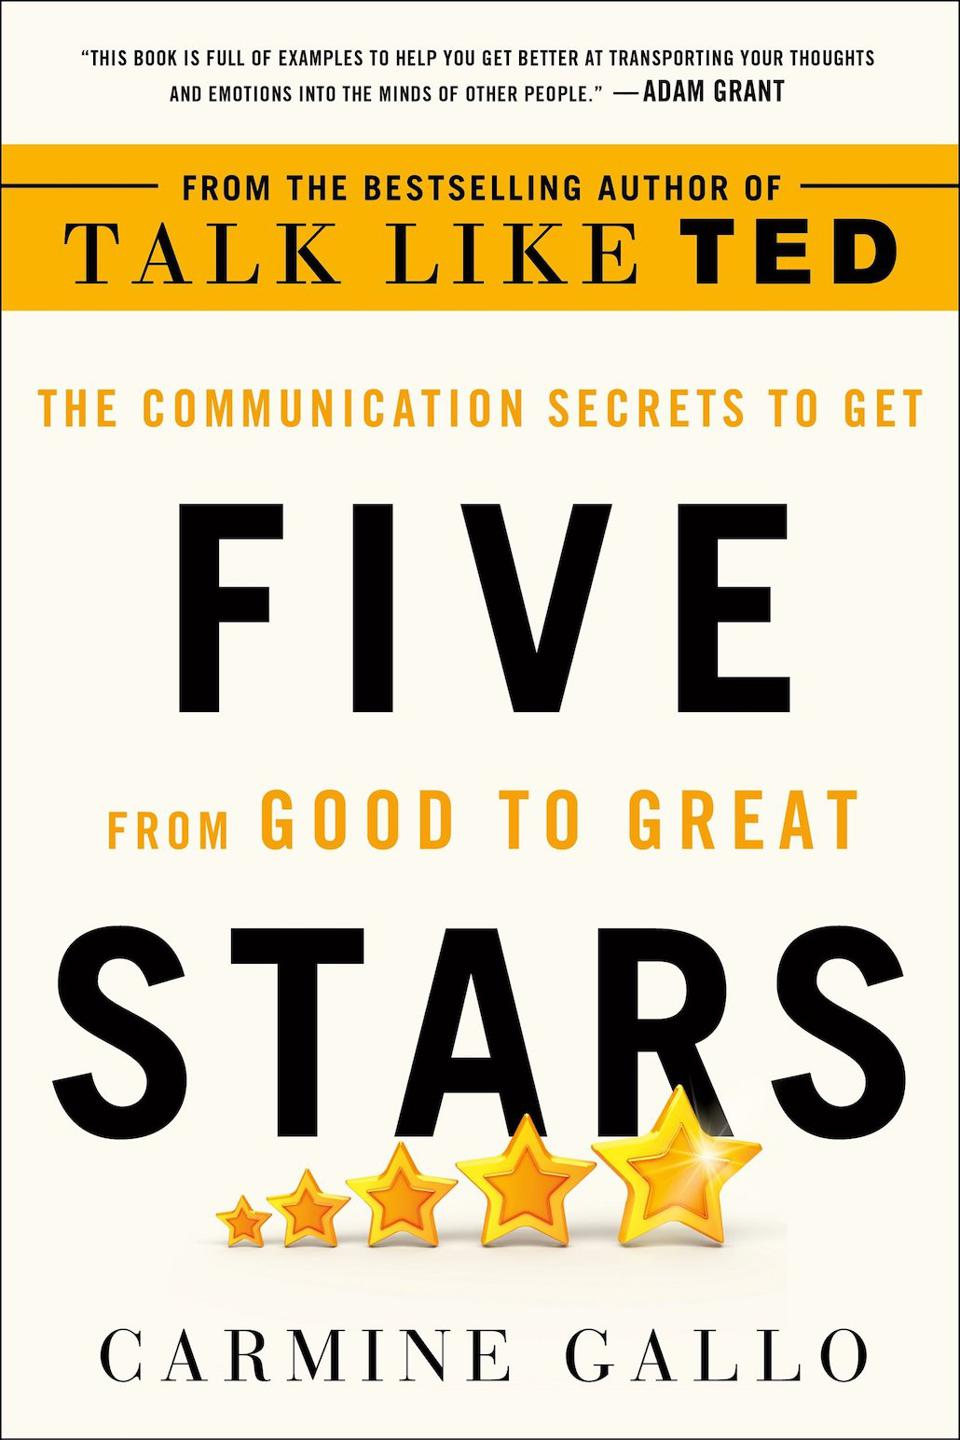 Five Stars: The Communication Secrets to Get From Good to Great by Carmine Gallo